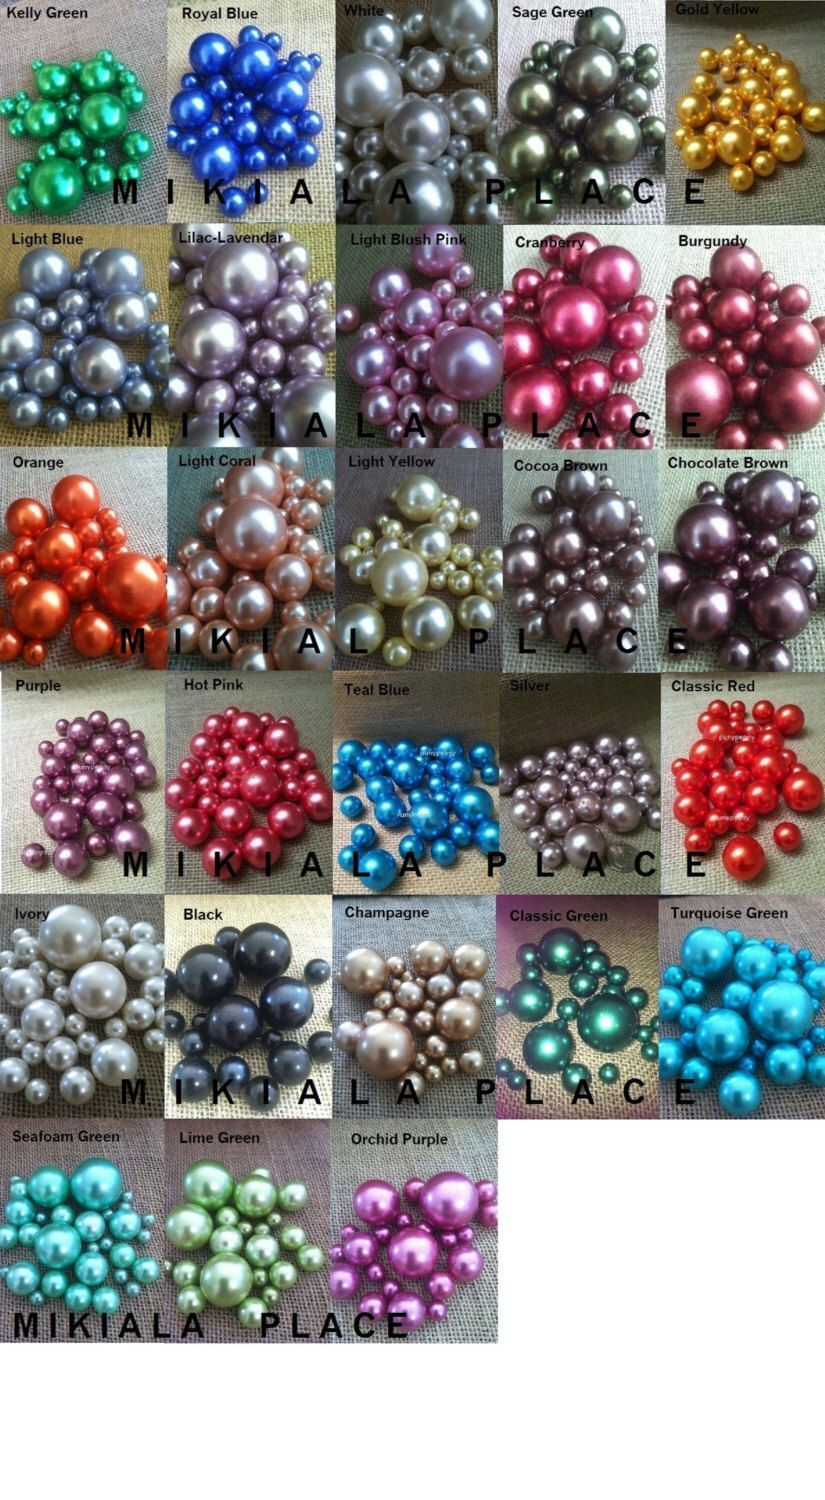 Wedding decor images  Vase Filler Pearls Perfect For Floating Pearl Centerpieces Home